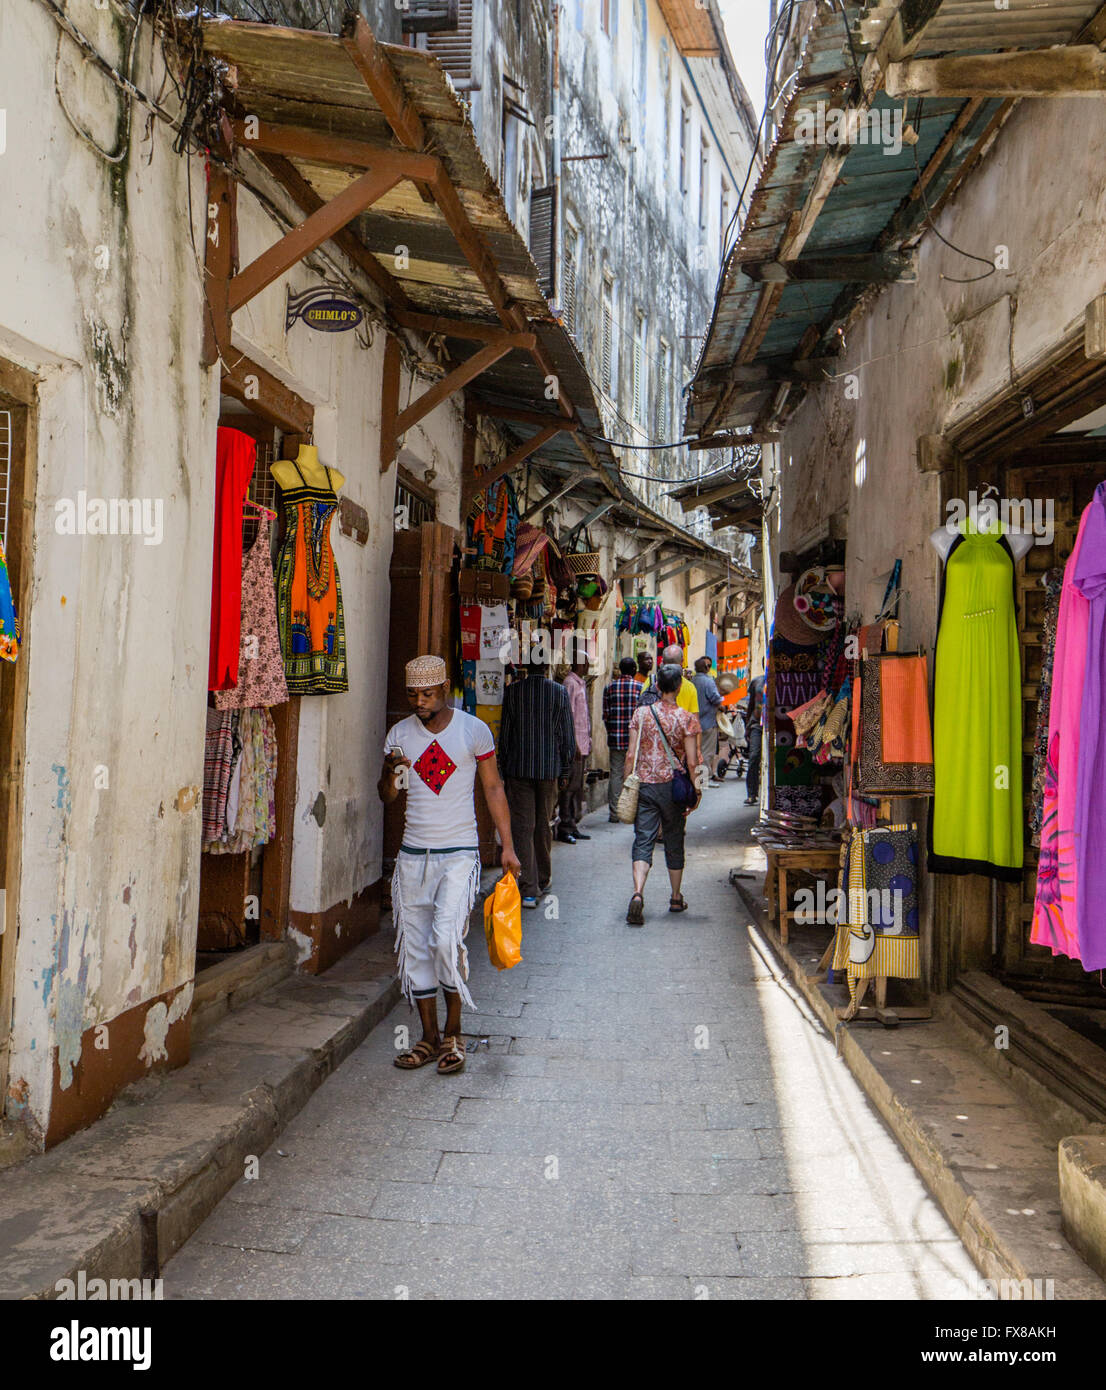 Narrow street typical of Stone Town in Zanzibar East Africa - Stock Image